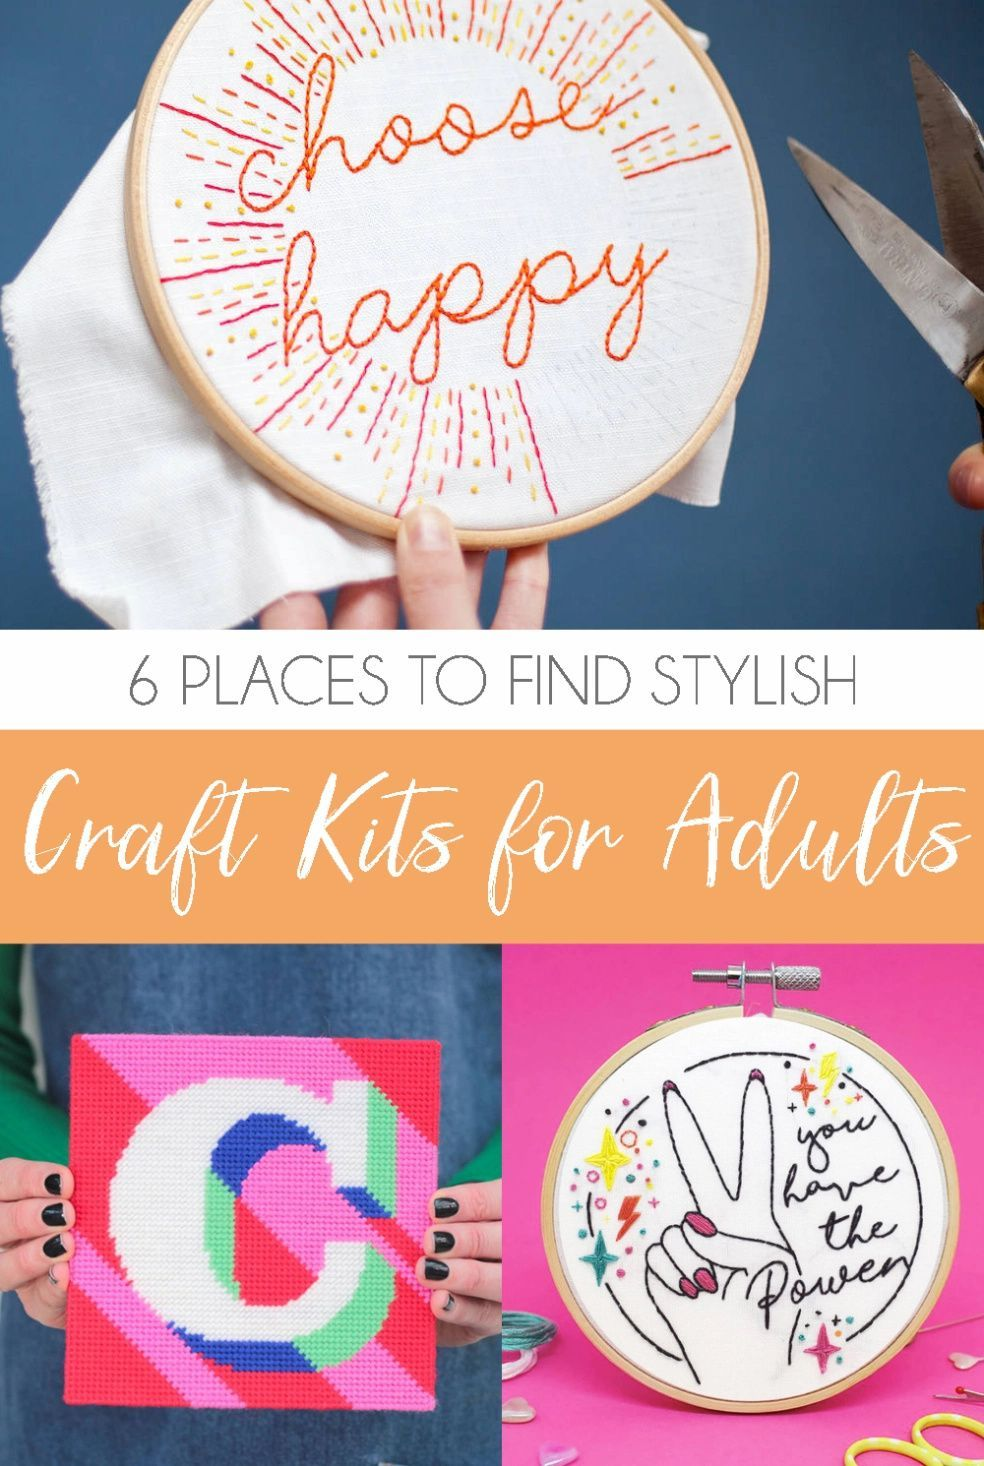 6 Stunning Contemporary Craft Kits For Adults In 2020 Craft Kits Contemporary Crafts Crafts